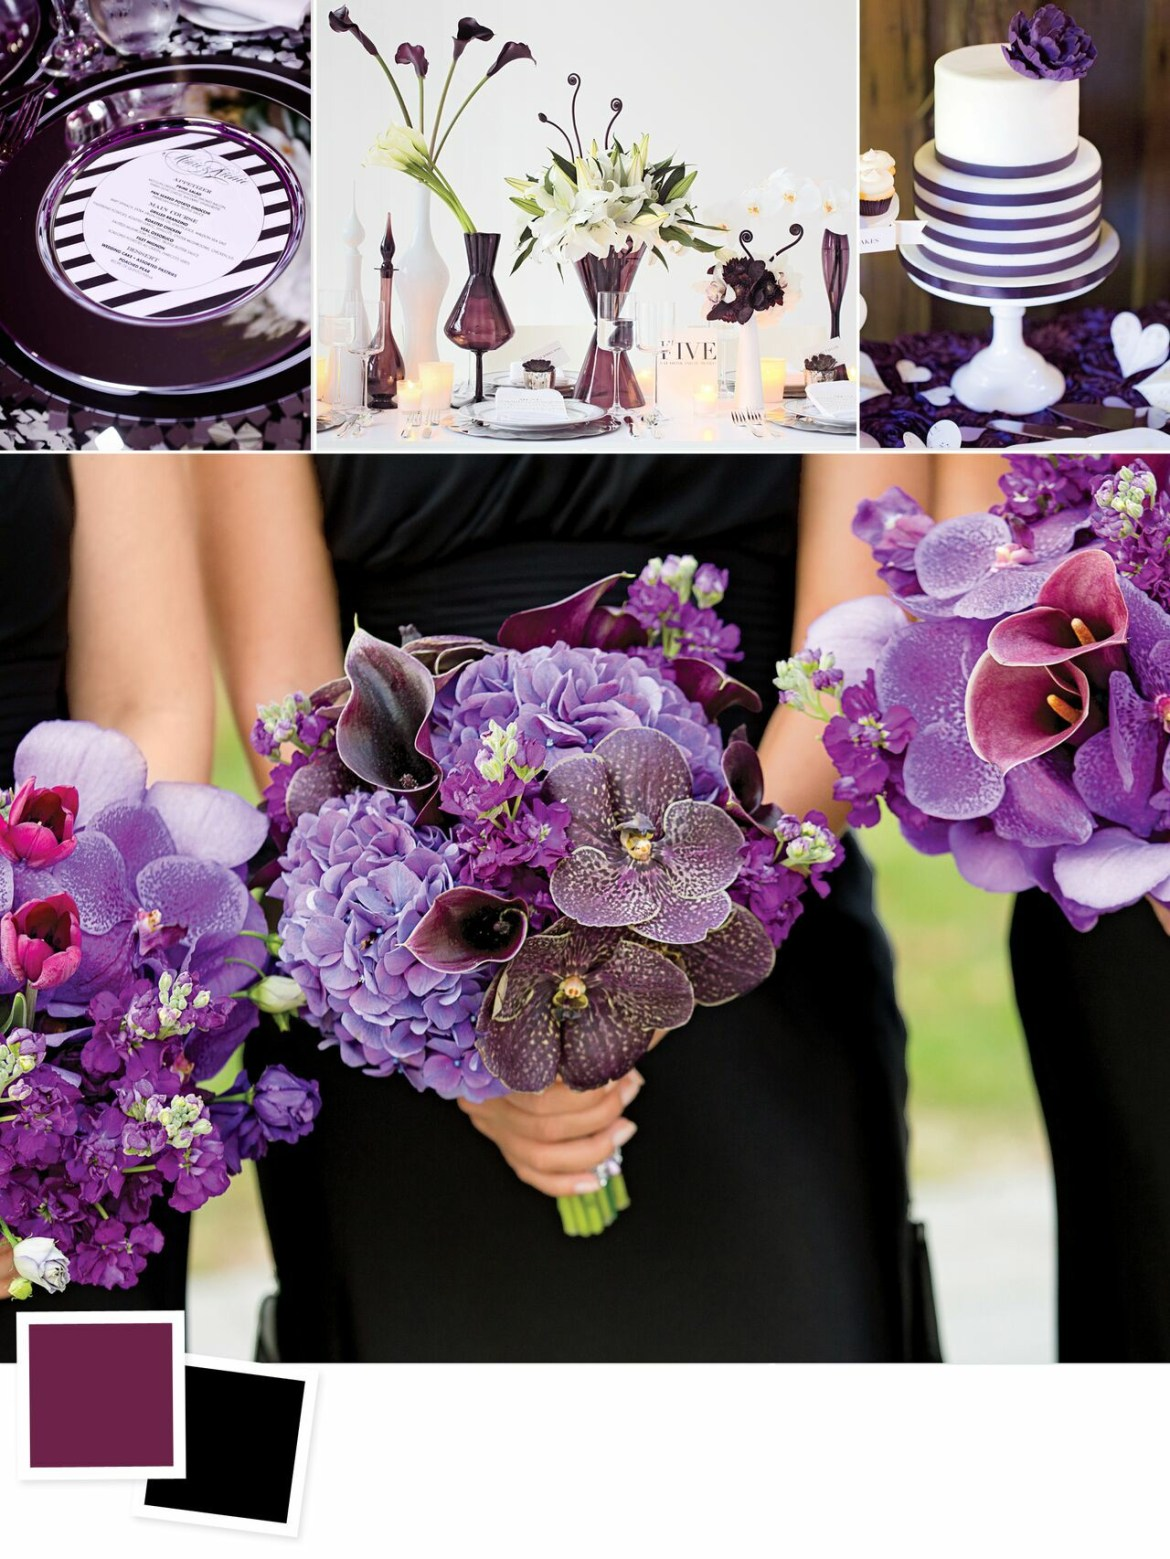 Evergreen Wedding Colour Combos For Your Wedding Decoration   Eggplant and Black Wedding Colors